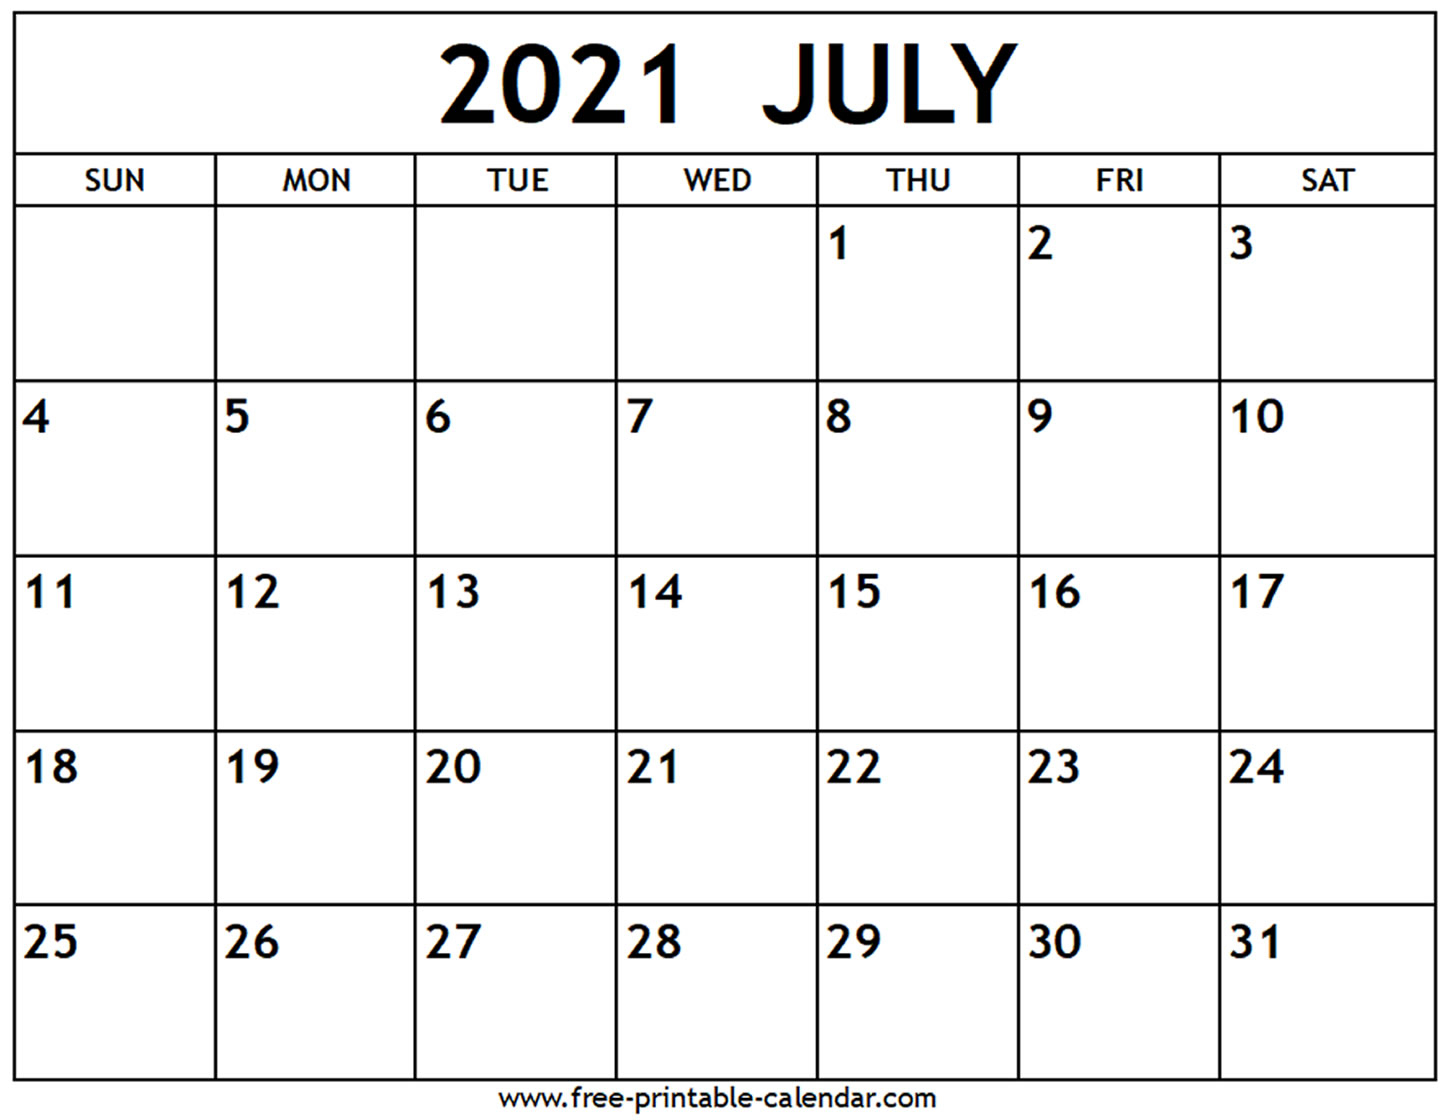 Free Printable Calendar July 2021 June 2021 | Free 2021 ...